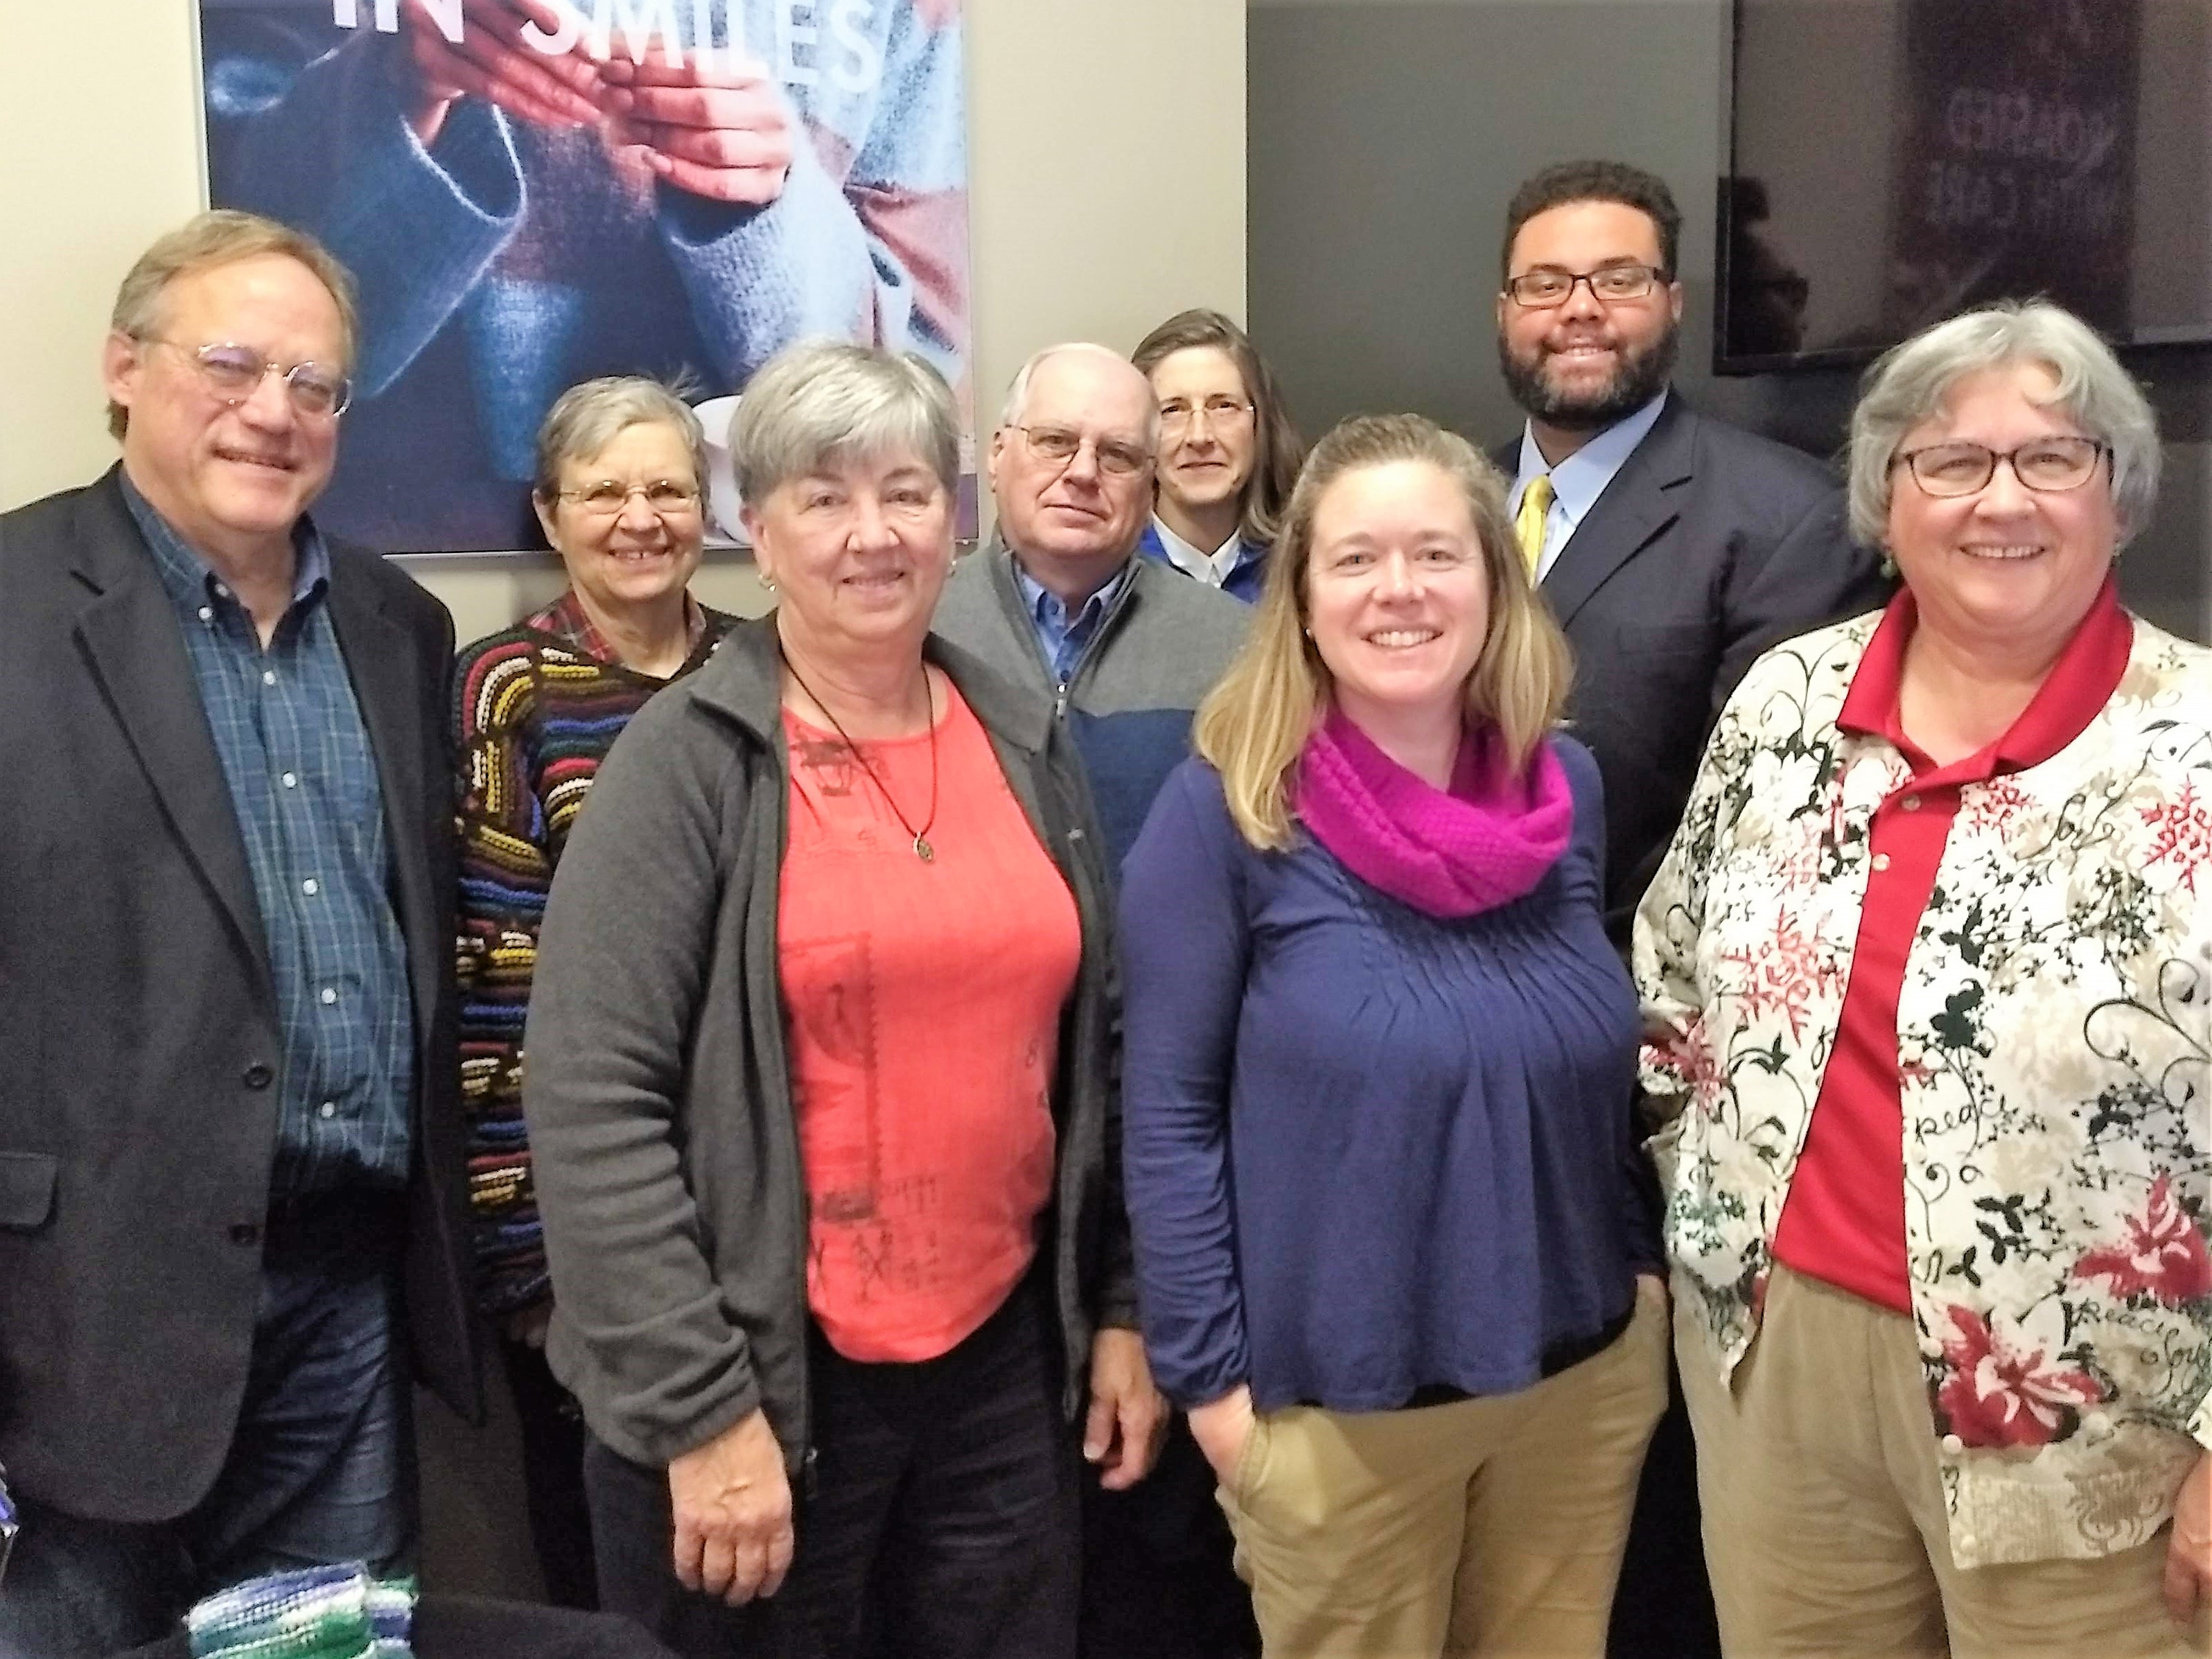 OTOC meets with 9 area senators in anticipation of 2019 Unicameral session - 20